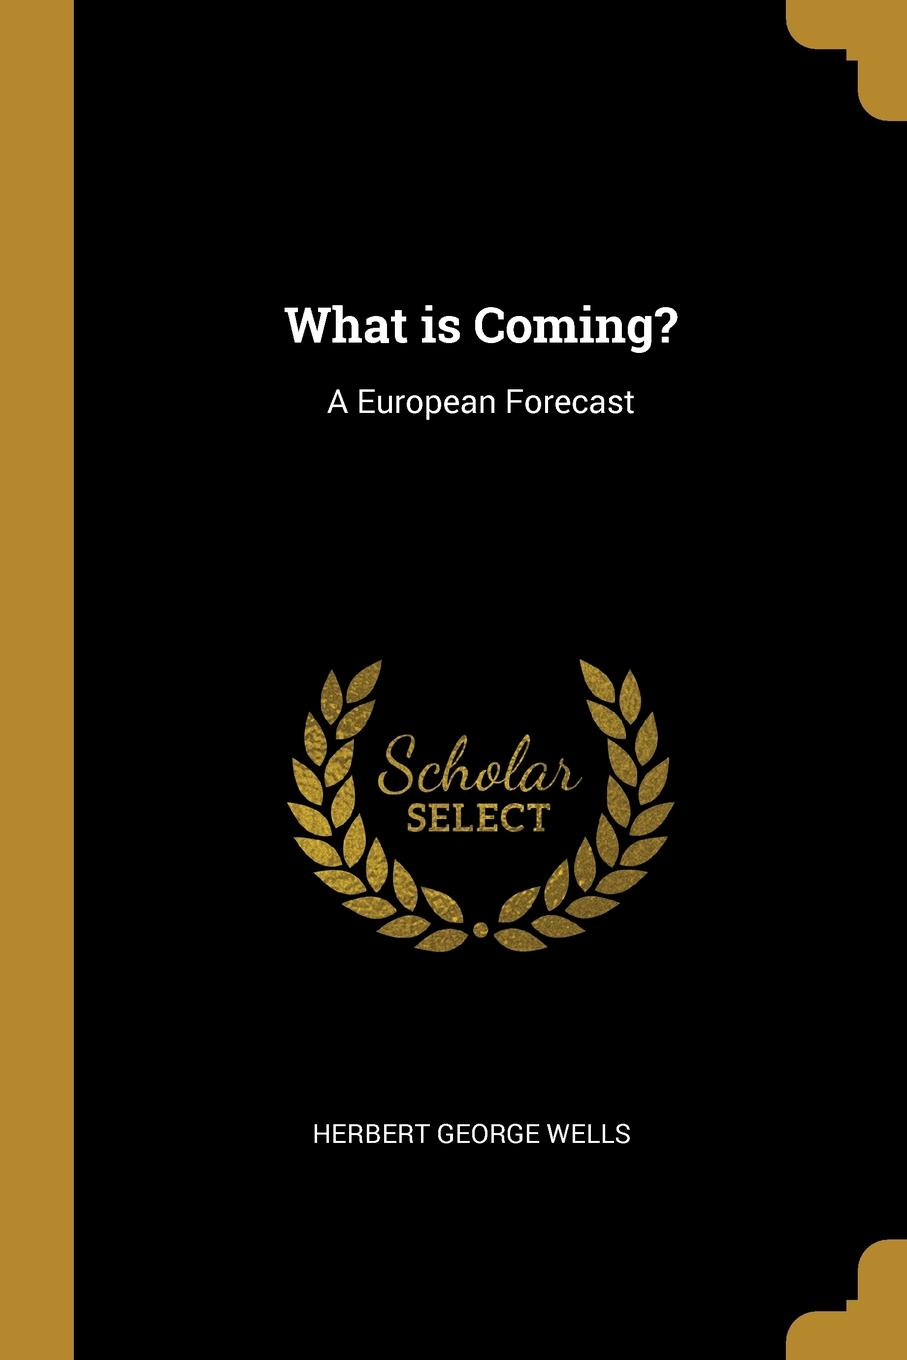 Herbert George Wells. What is Coming.. A European Forecast